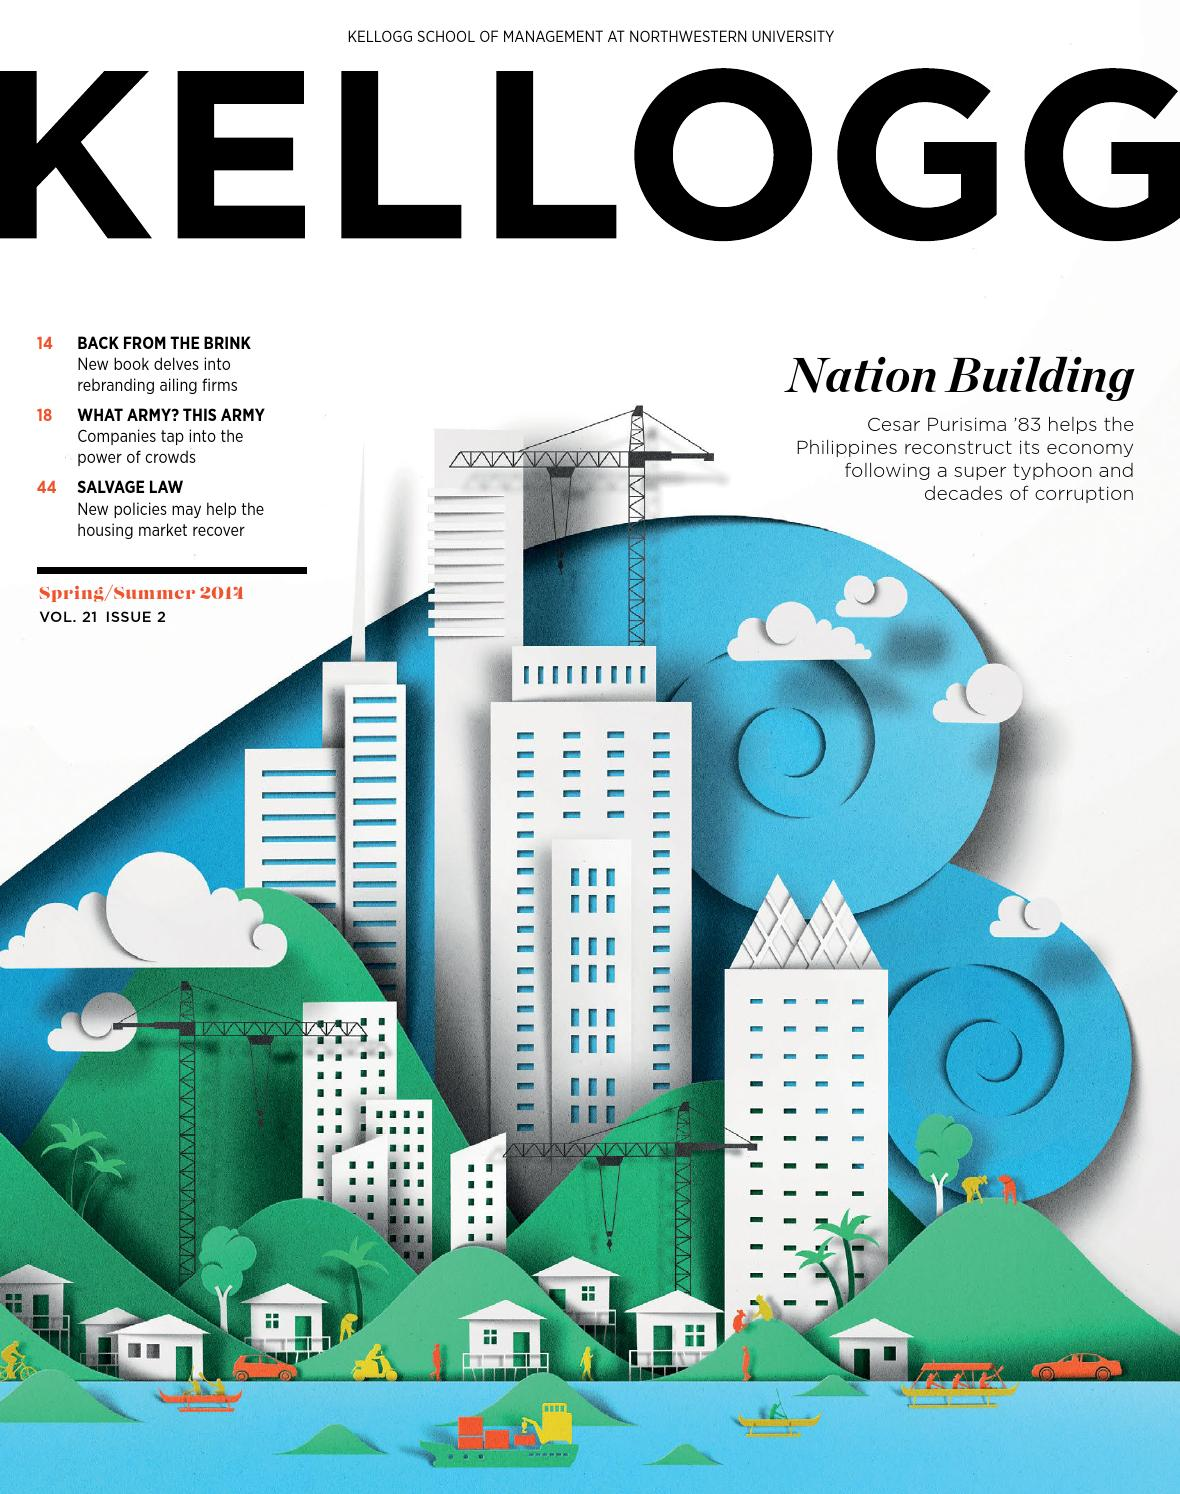 Kellogg Alumni Magazine  Springsummer 2014 By Kellogg. Buying Salvage Cars From Insurance Companies. E Learning Development Tools. How Much Do Counselors Make Mlb Credit Card. Premarket Stock Trading Sony Tv Repair Denver. Phoenix School For The Deaf Voip Caller Id. Senior Lending Network Free Investment Advice. Car Insurance San Marcos Tx Cable With Dvr. Equinox Sports Club West La Sweet In Spanish